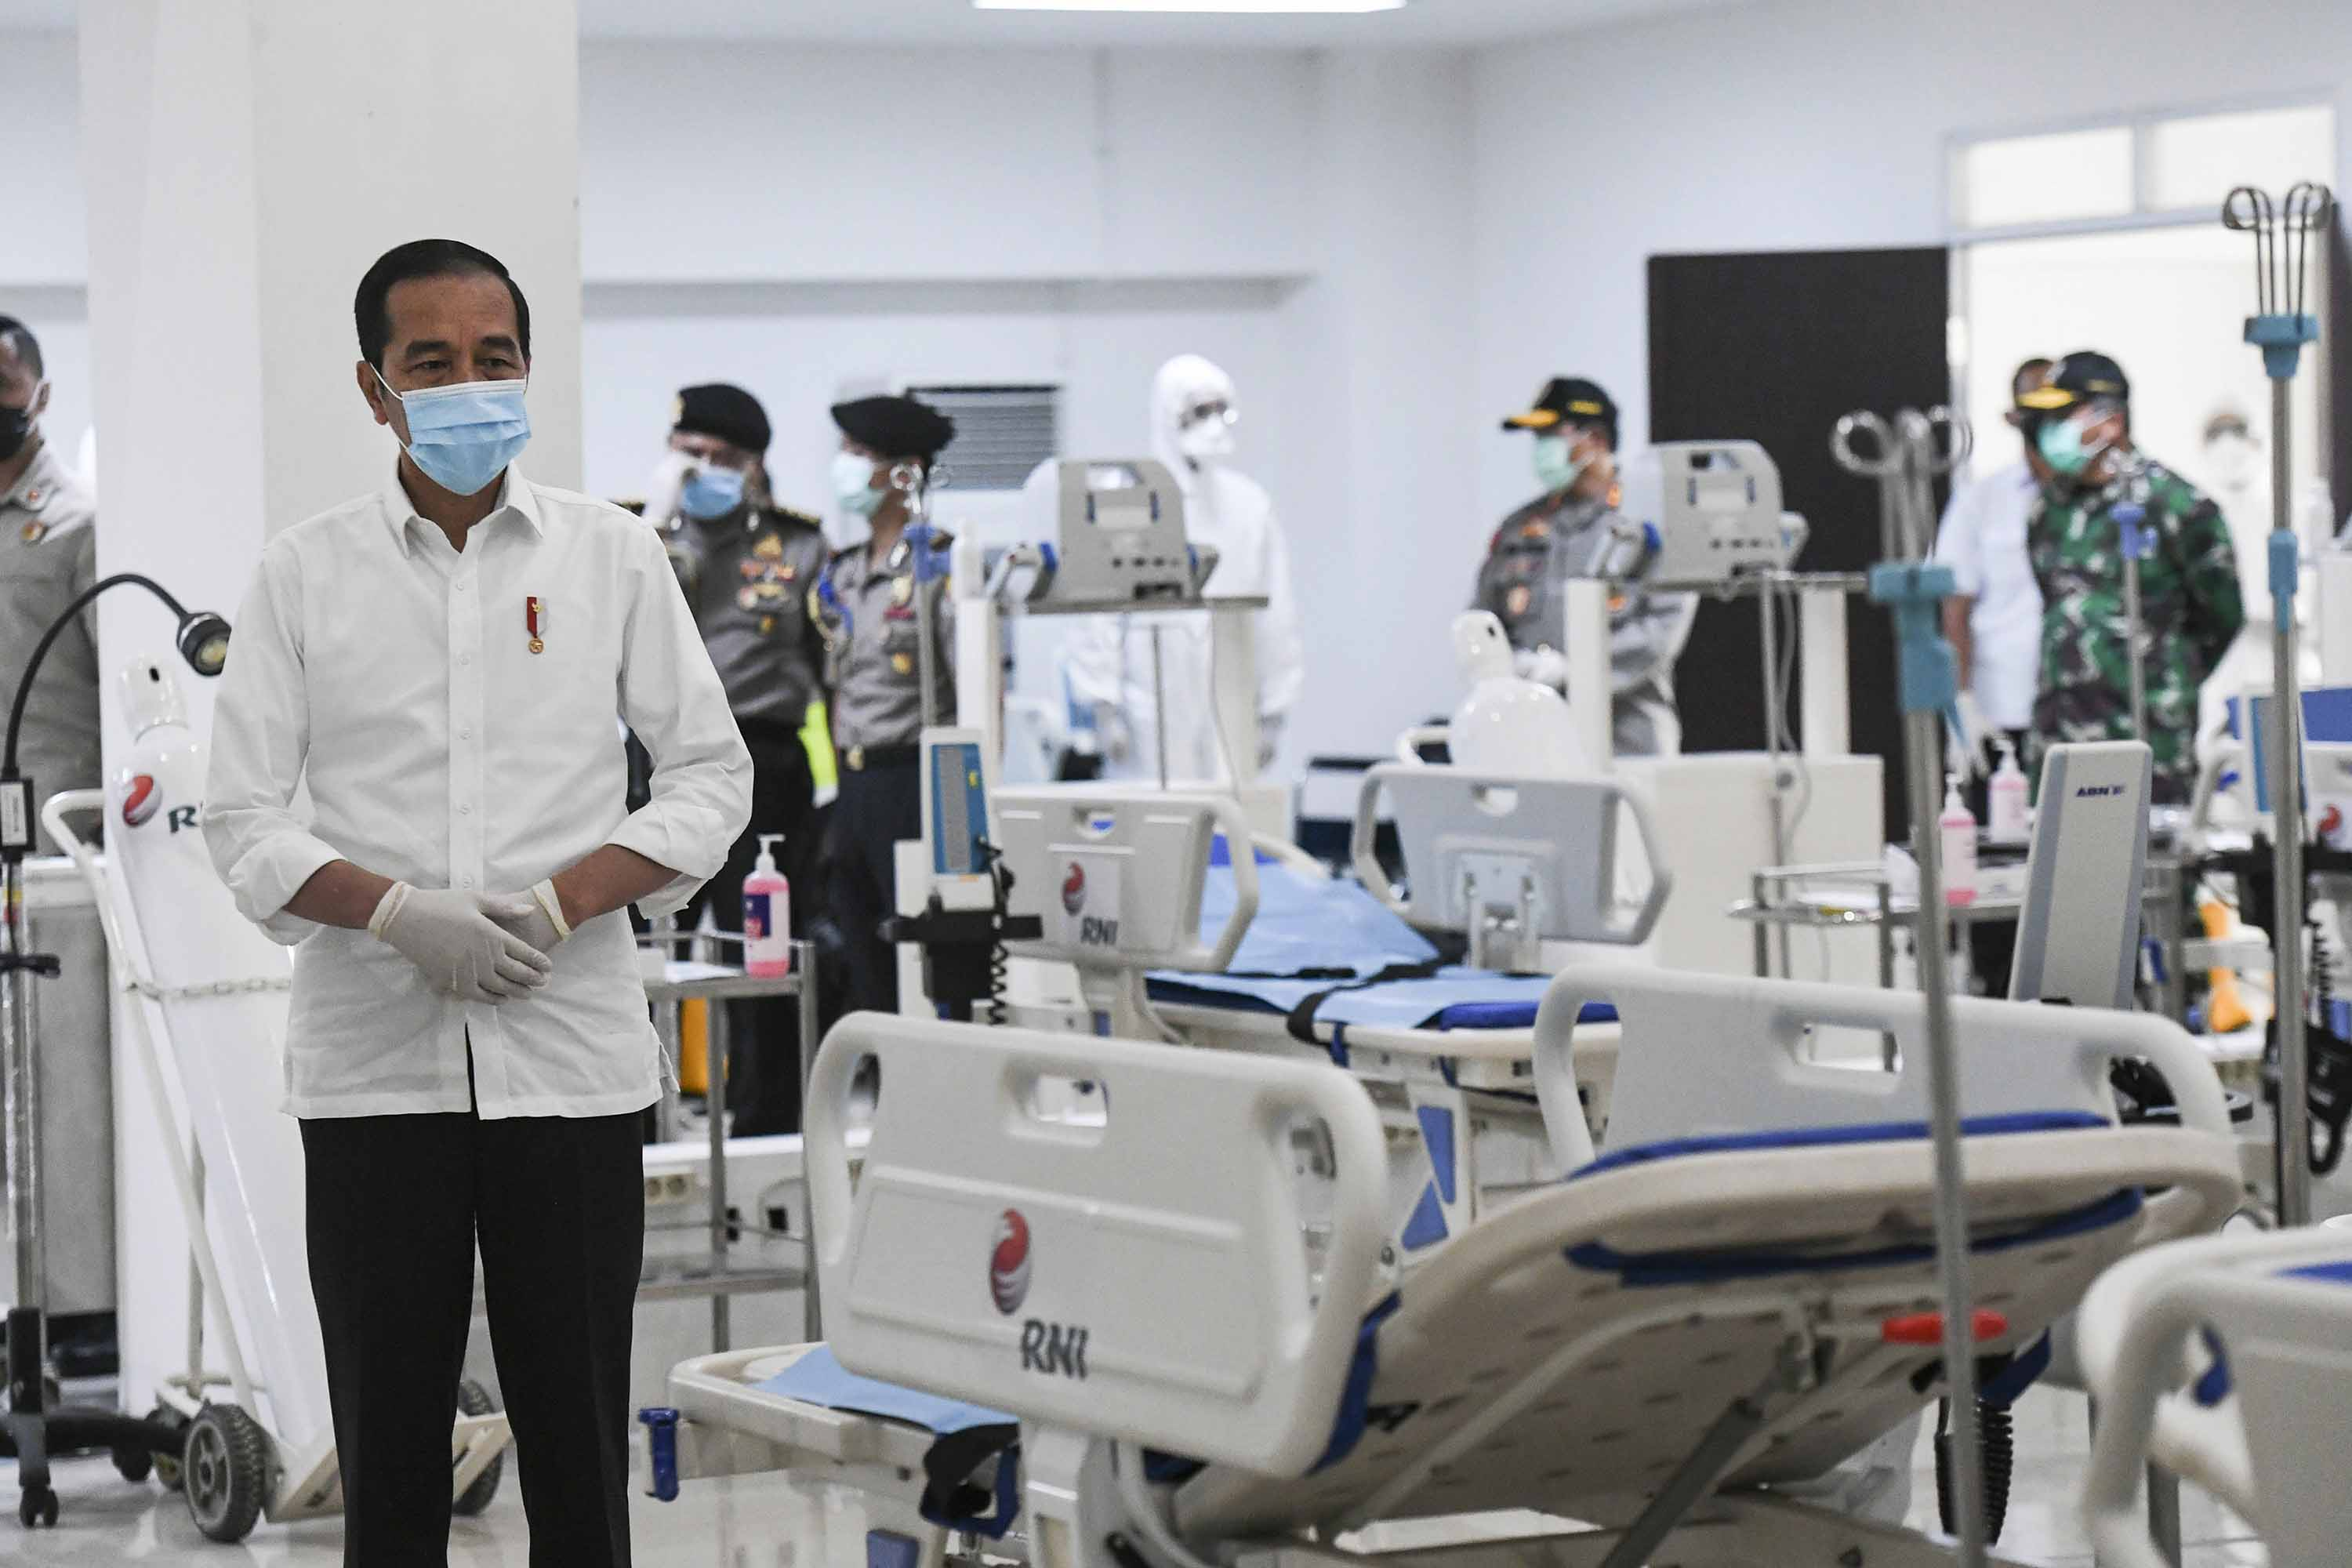 Indonesian President Joko Widodo, left, inspects medical equipment at a hospital in Jakarta, Indonesia, on March 23.